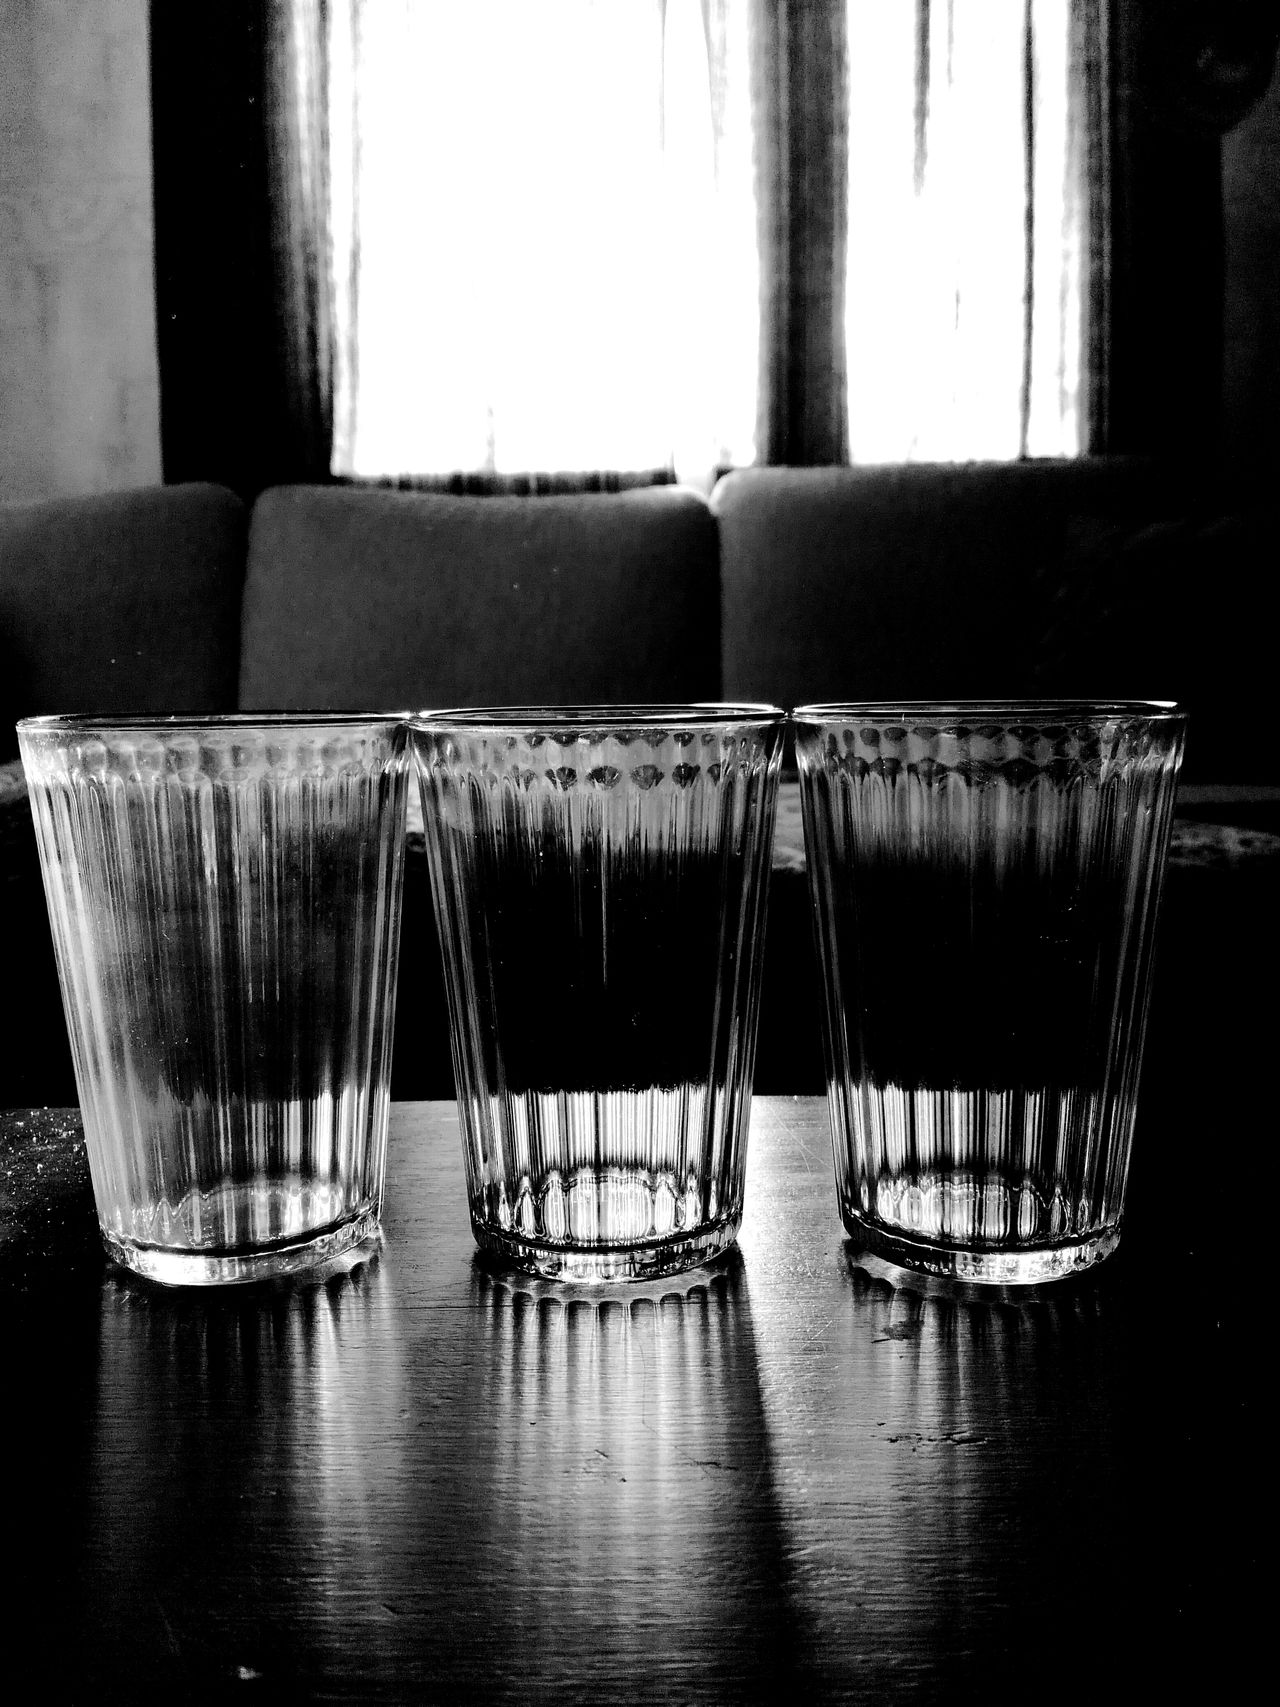 Indoors  No People Table Day Glasses Transparency Light And Shadow Dark And Light In Front Sun Through The Window Foreground Focus Blackandwhite Drinking Glasses Used After Party Sofa Curtains Used Glass Day After  Trio